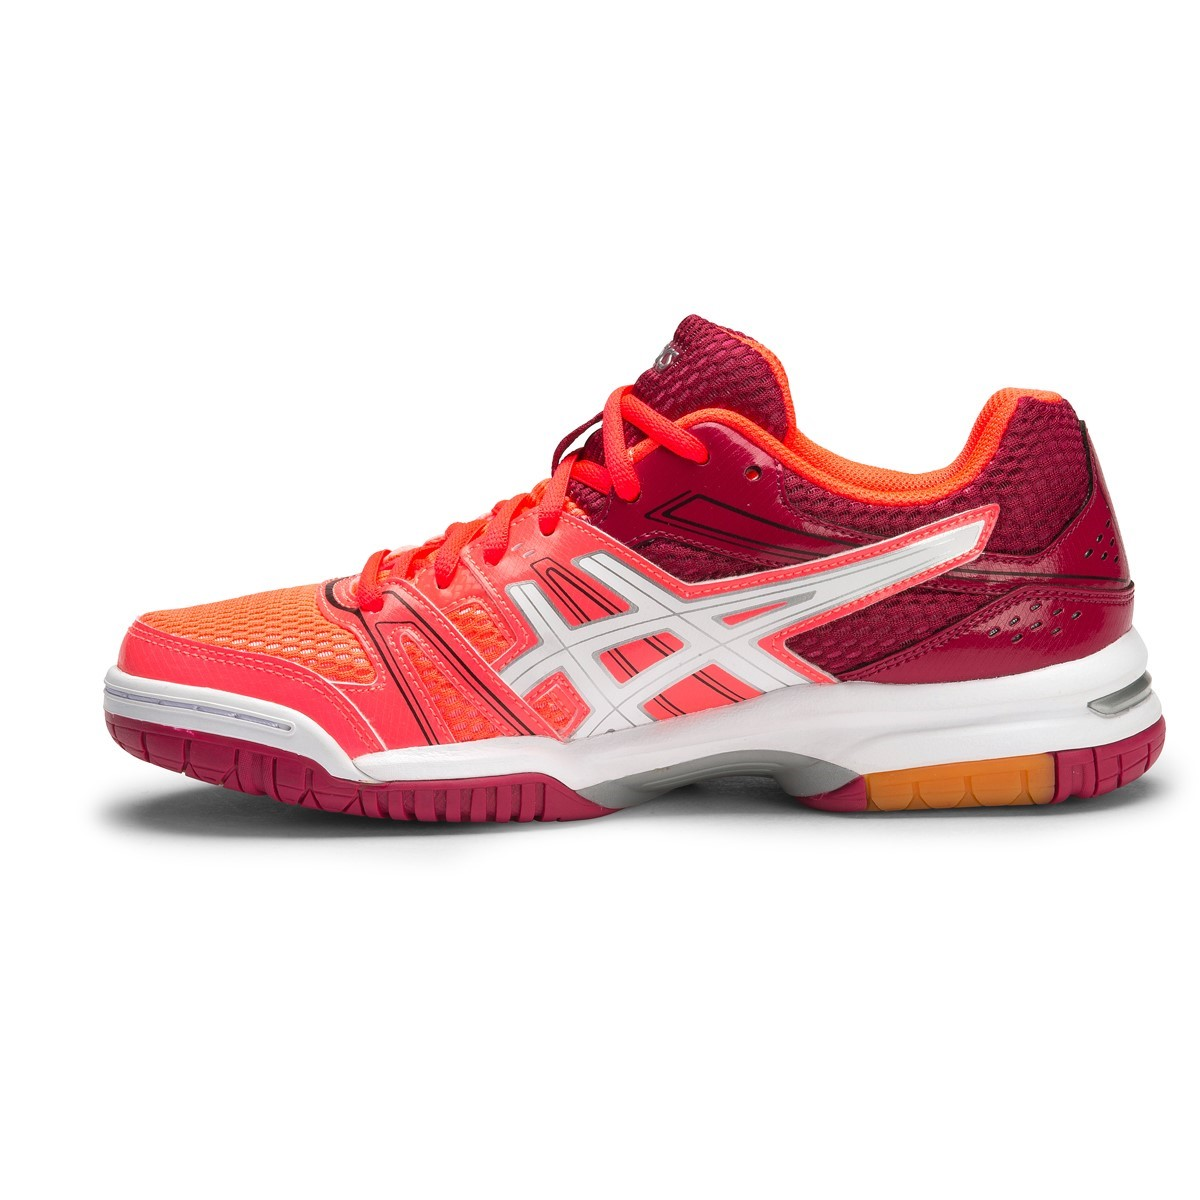 1bd2a13901a7 Asics Gel Rocket 7 - Womens Indoor Court Shoes - Flash Coral White Cerise